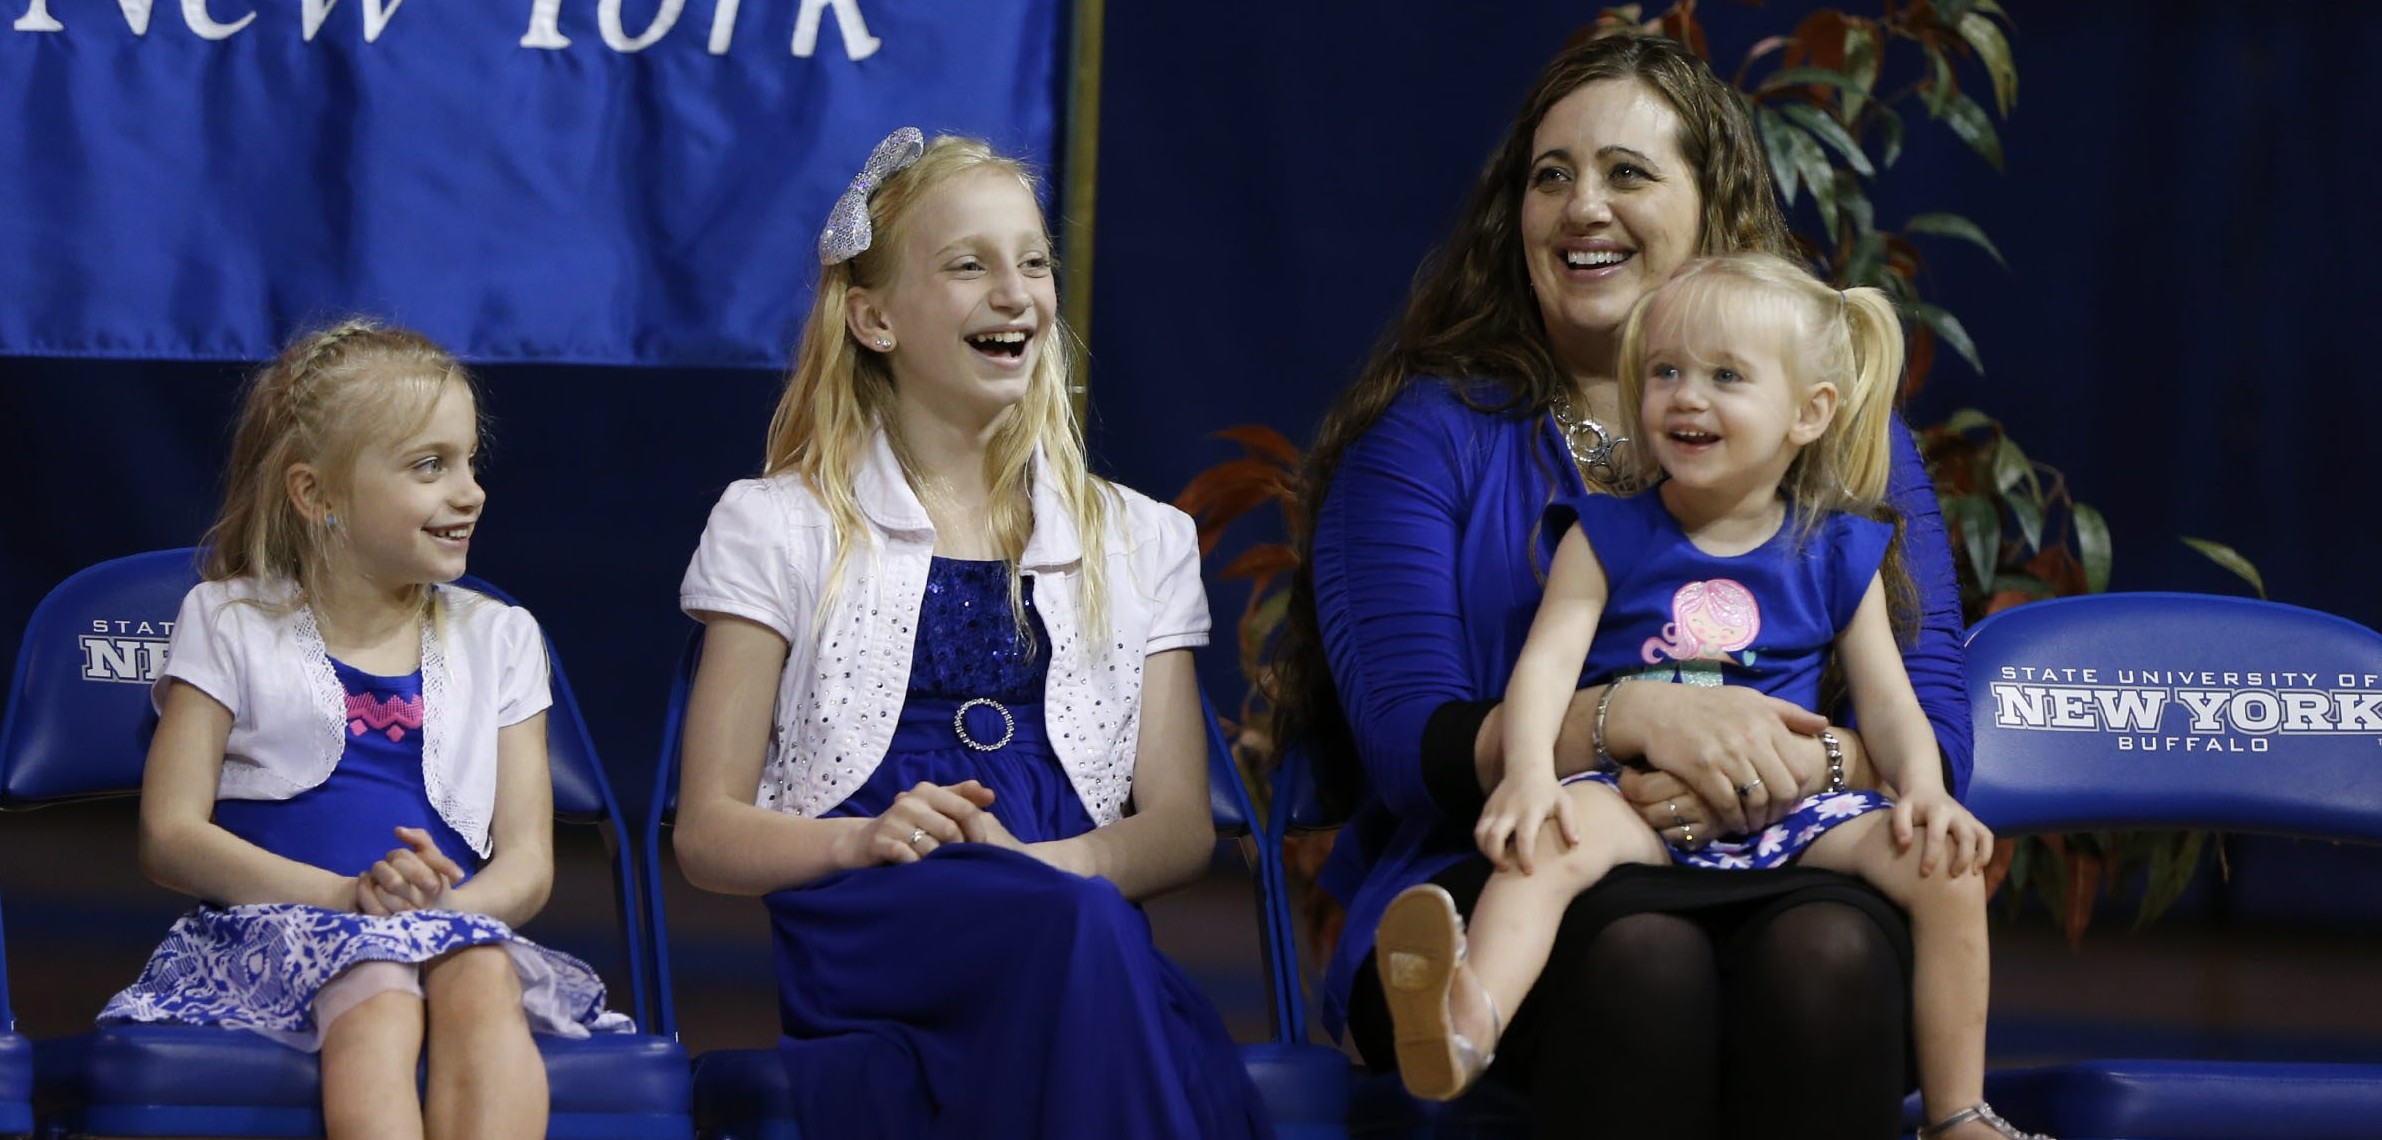 When Nate Oats was introduced as UB's men's basketball coach in 2015, his wife, Crystal, and daughters were on hand to cheer him on. (Harry Scull Jr./News file photo)